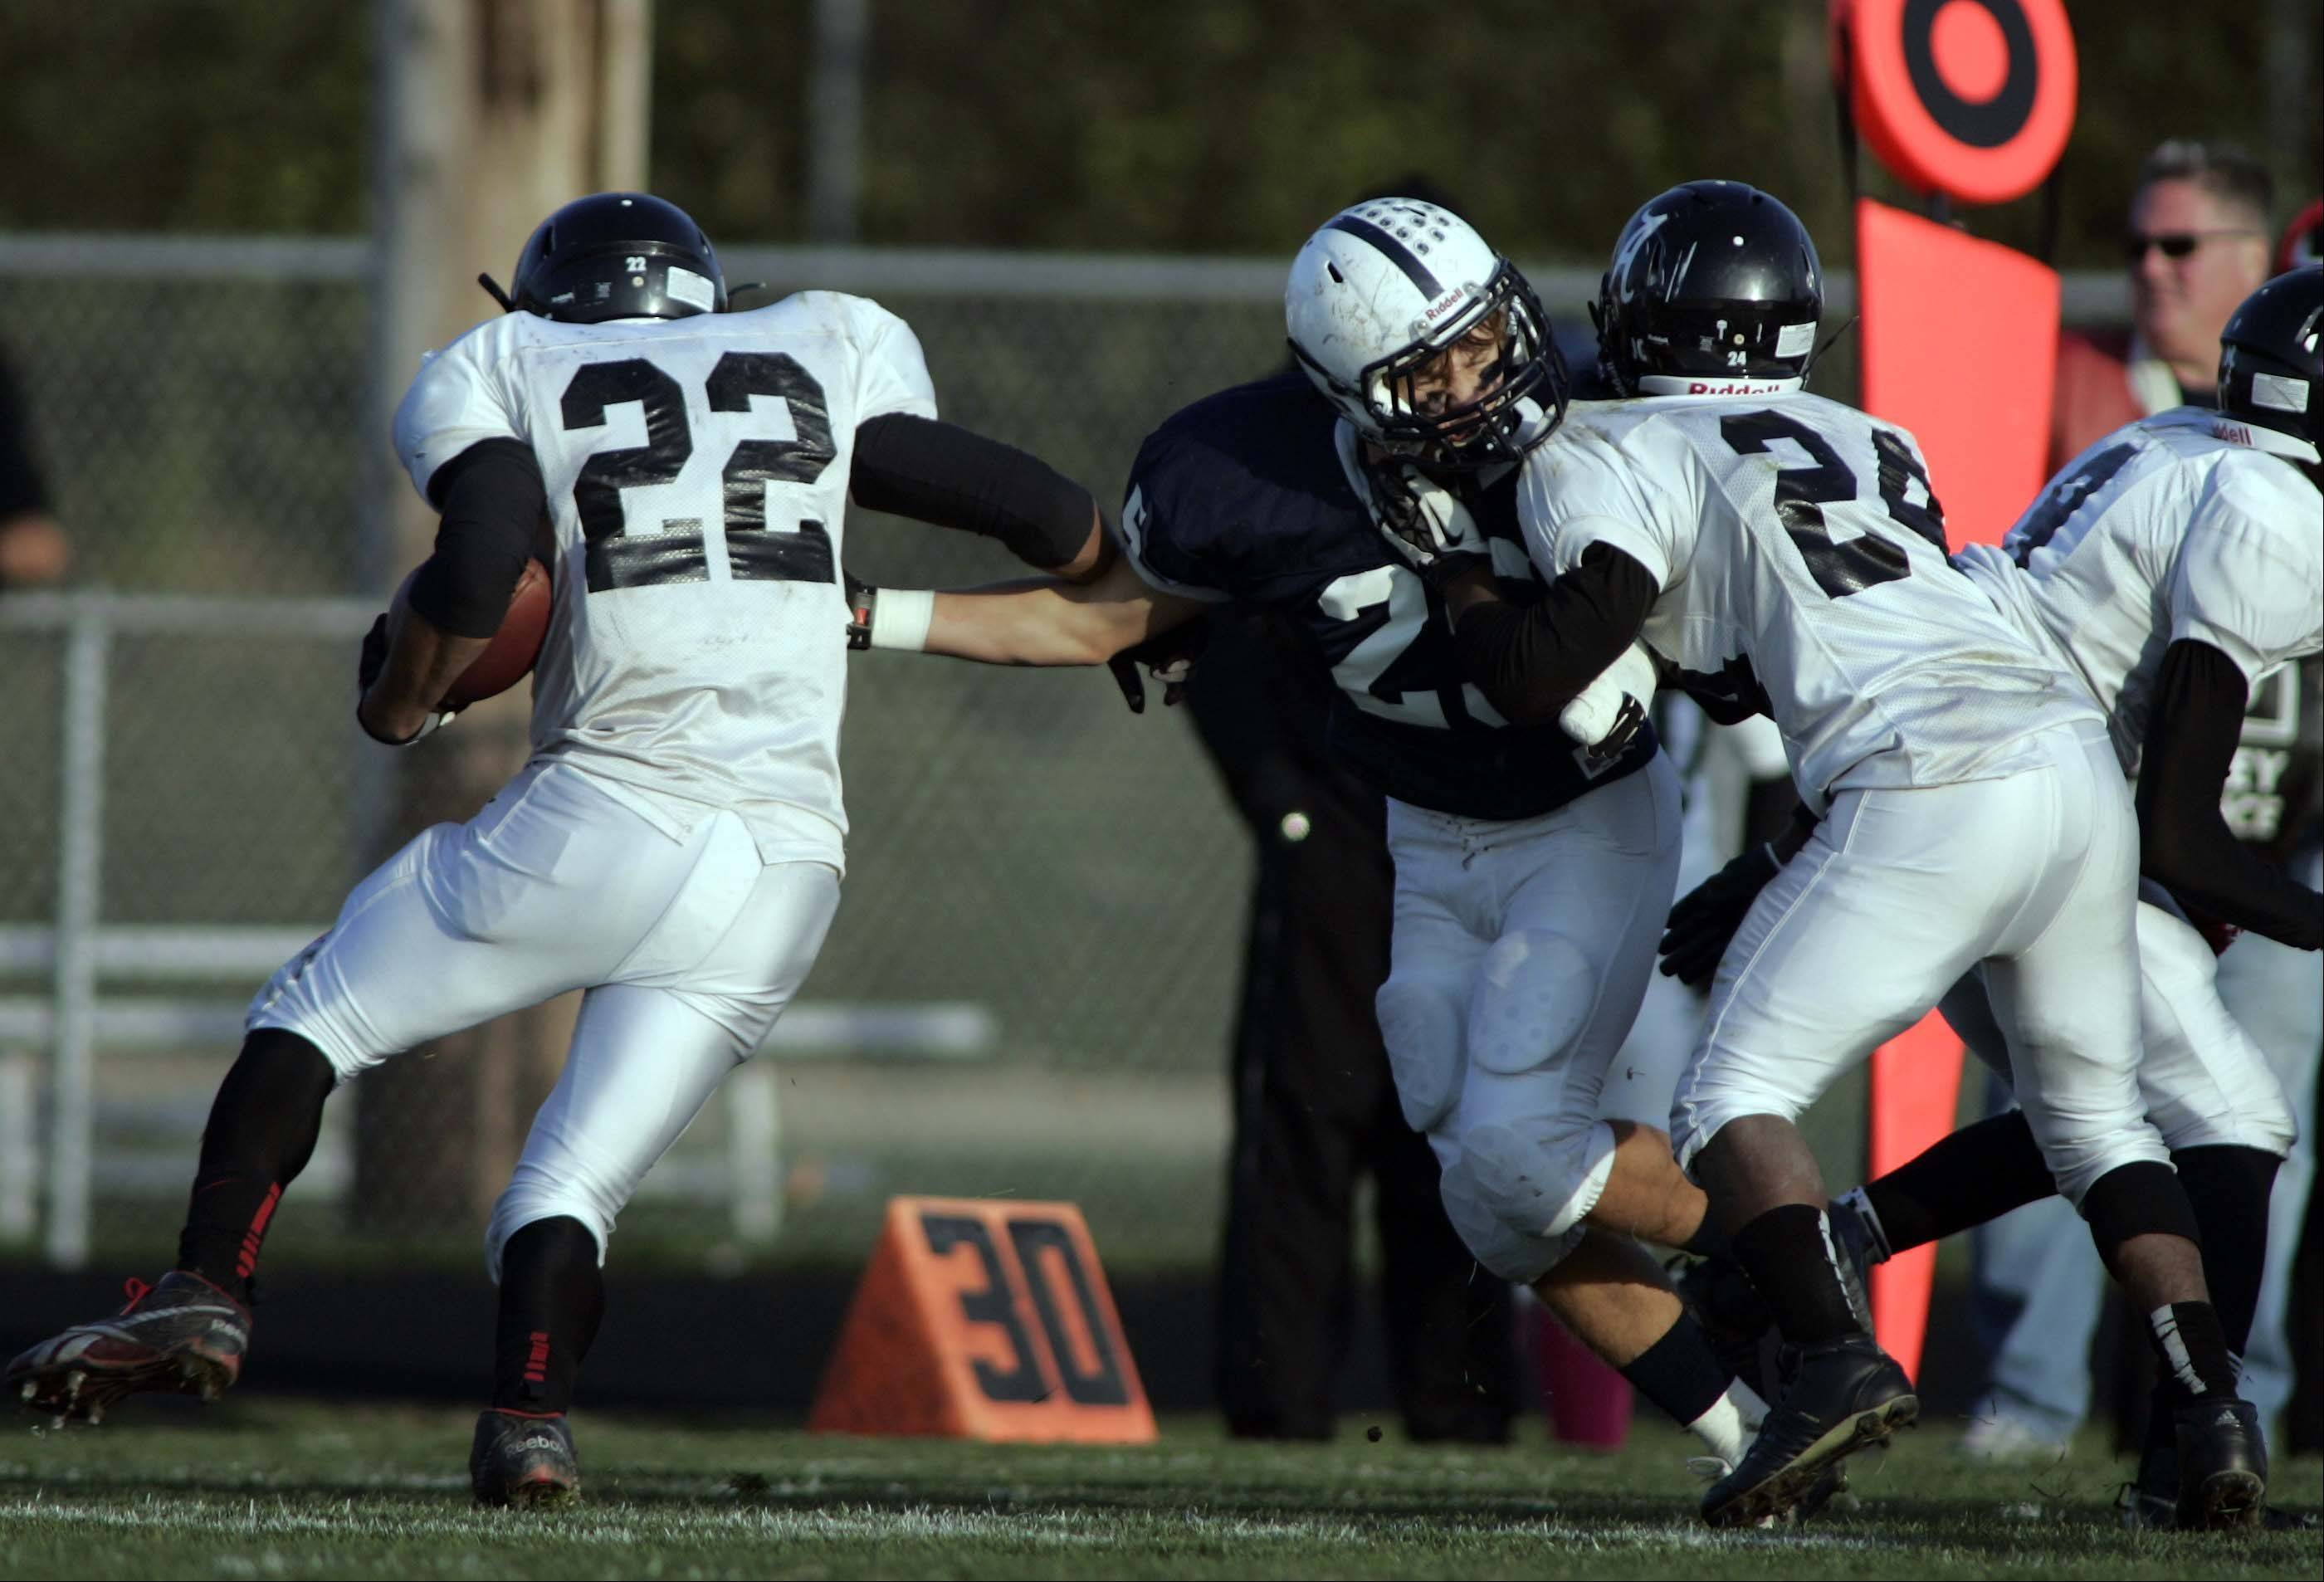 Playoffs - Round 1 - Images from the Cary-Grove vs. Rockford Auburn football game Saturday, October 27, 2012.